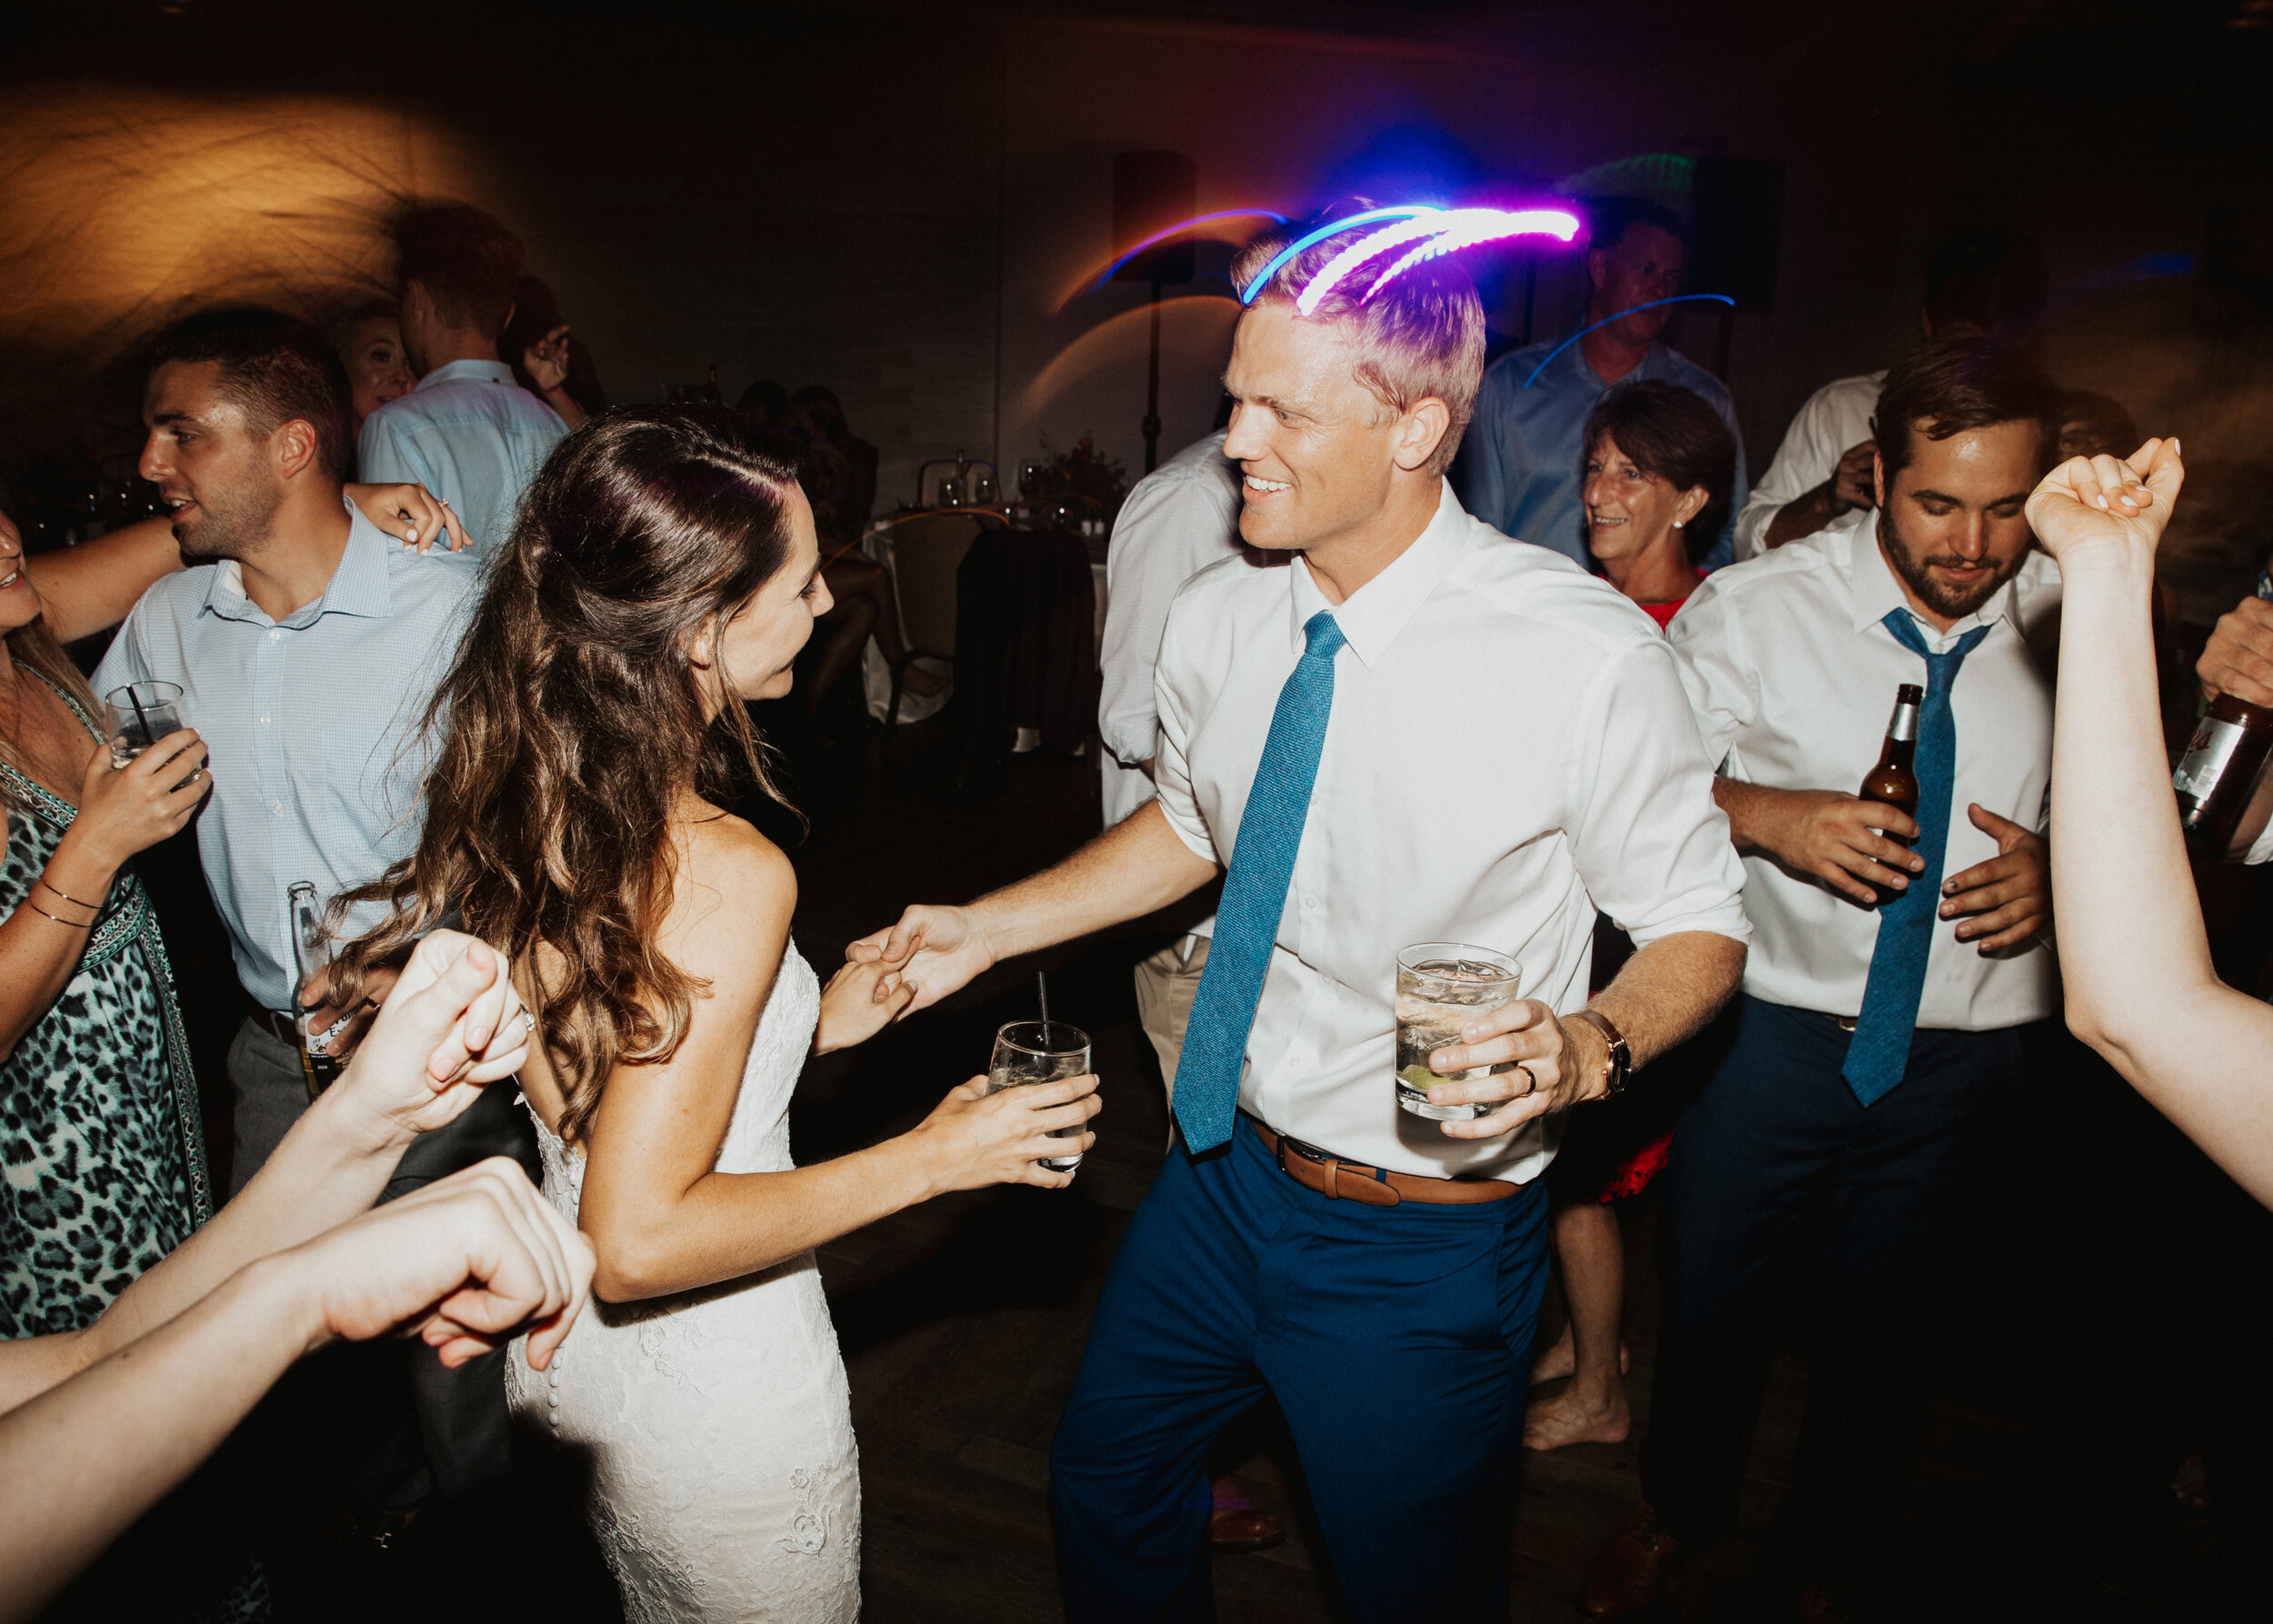 """- """"Joe was awesome at our wedding! He played acoustic guitar during the ceremony and cocktail hour, and DJ'ed great music for the dancing afterwards. It was absolutely perfect. He was easy to communicate with and made the whole process stress-free. We highly recommend him""""- Venice ★★★★★"""